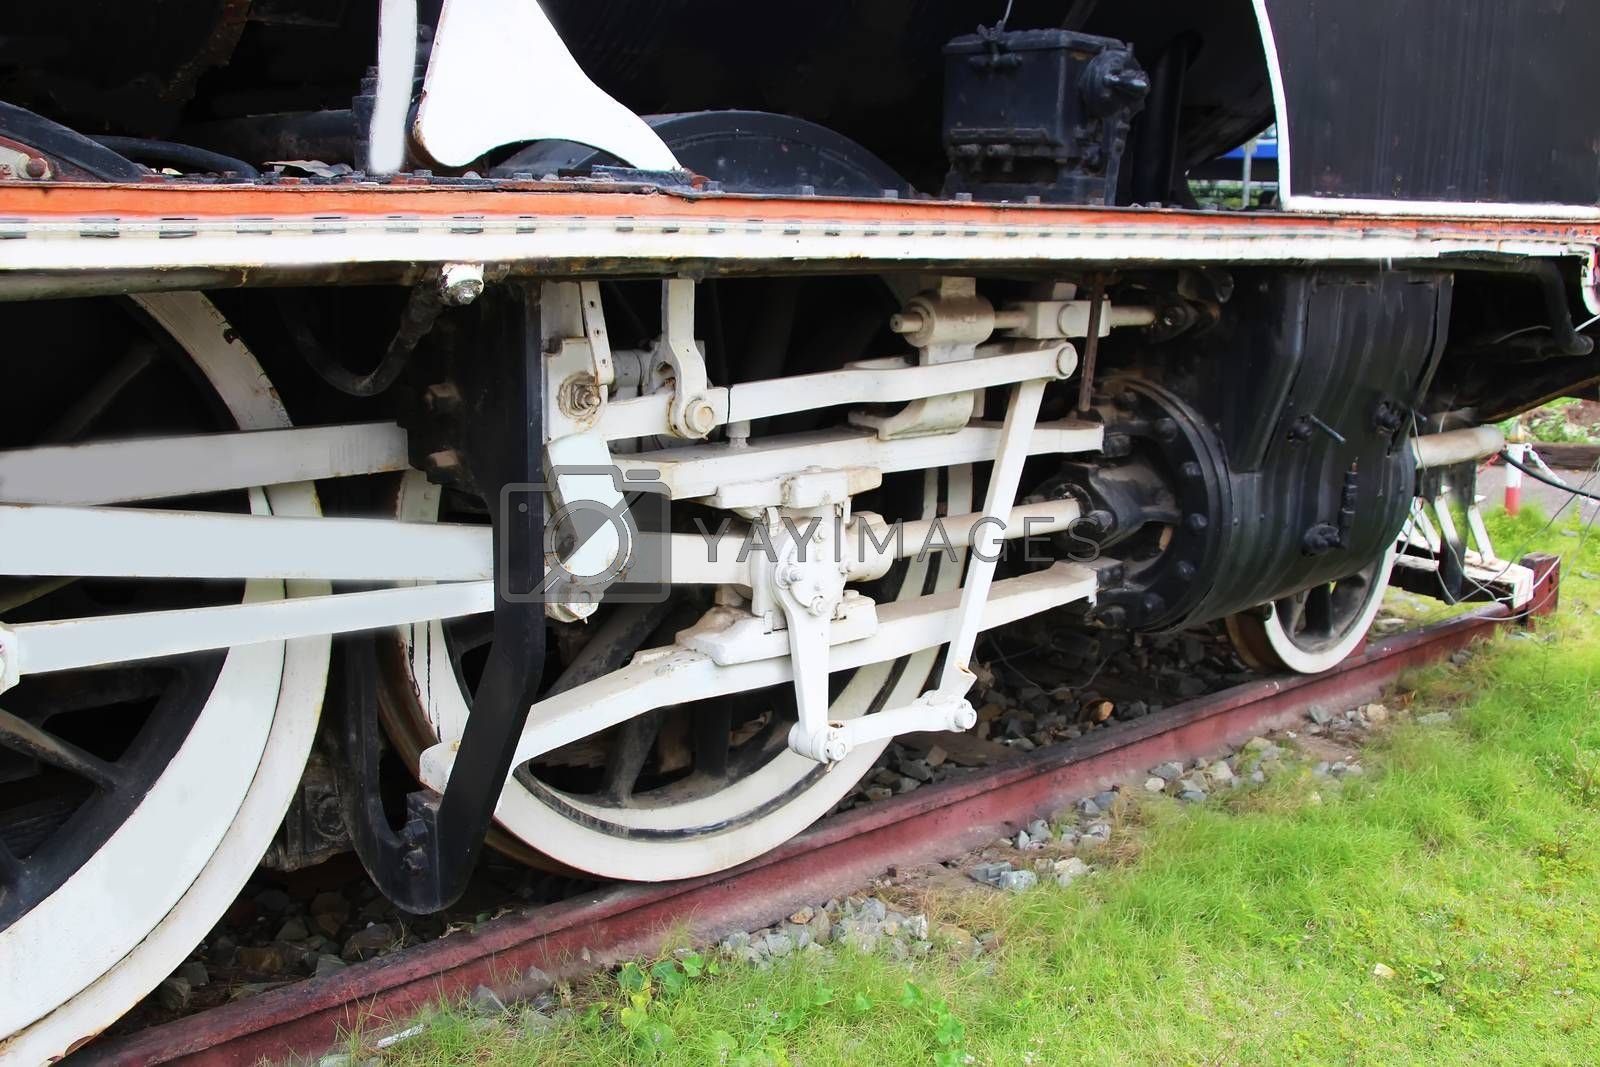 Steam engine and crank mechanism of an old steam locomotive, Cambodia 3